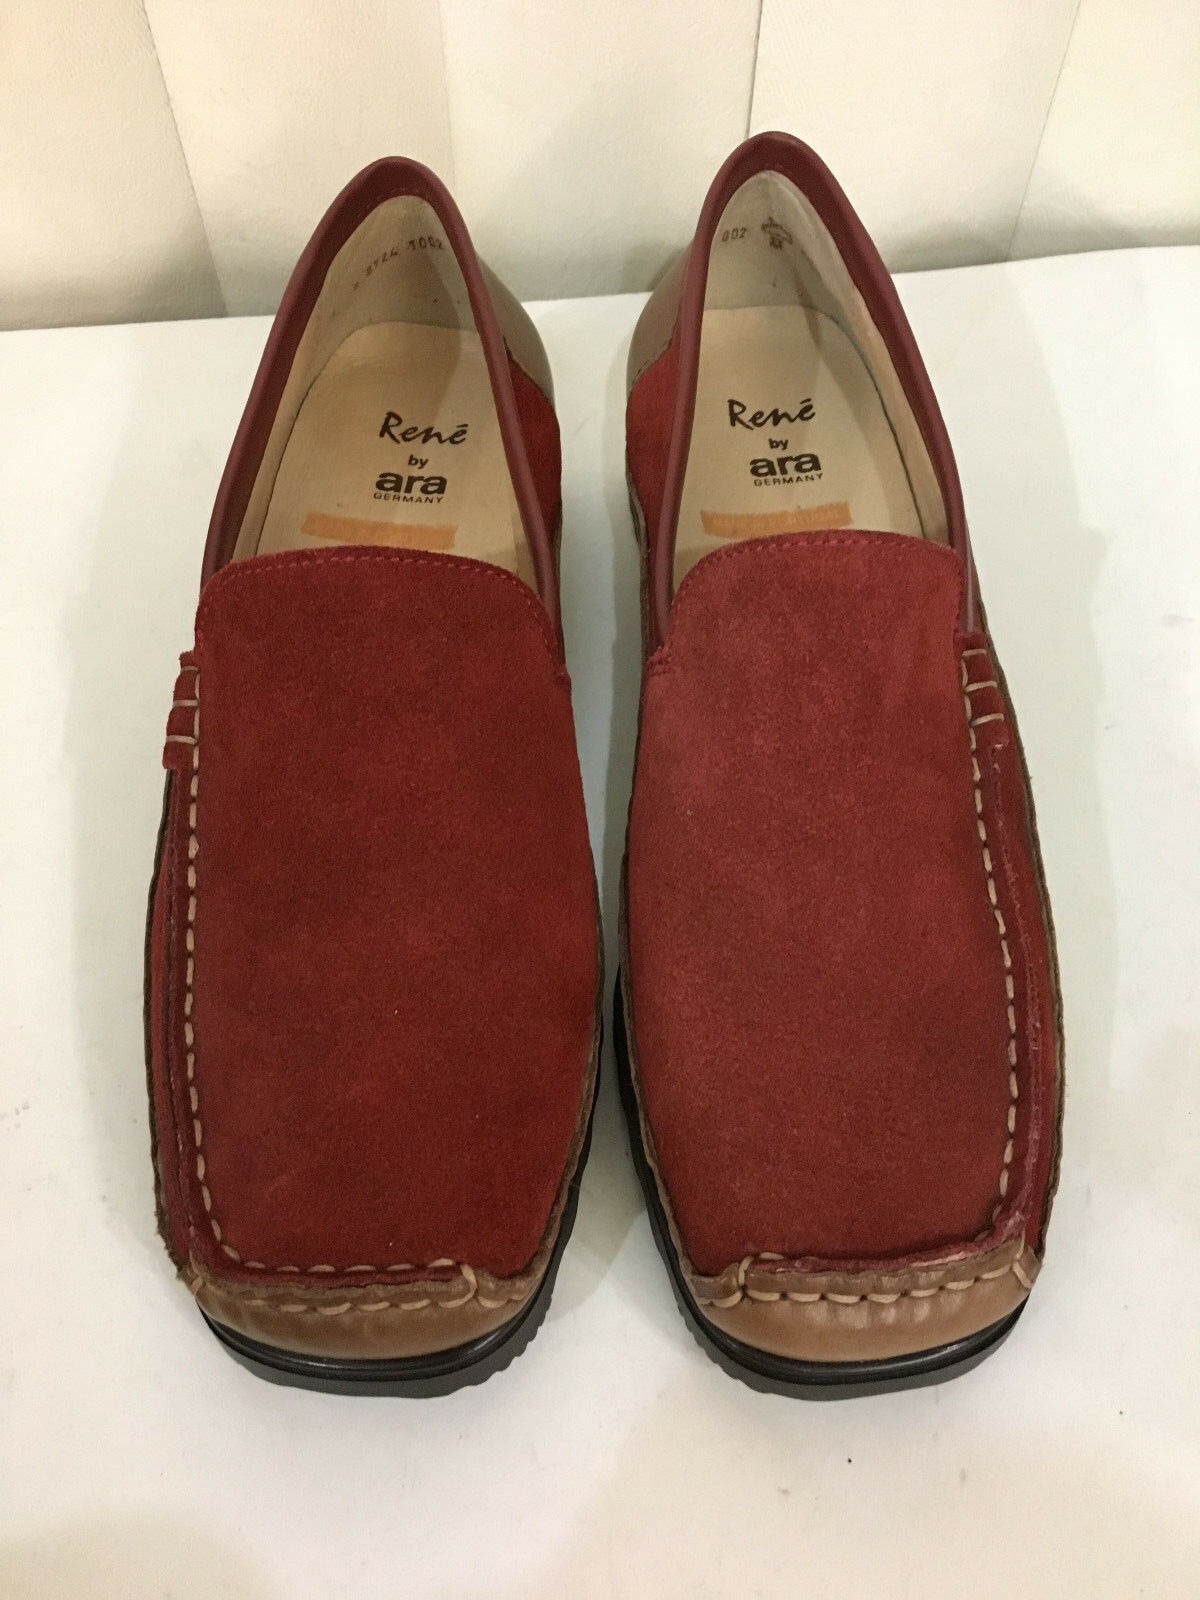 Rene By ARA marron rouge rouge rouge Suede Knitted Loafers Slip On Moccasins 6.5  7.0 Medium 06d64f